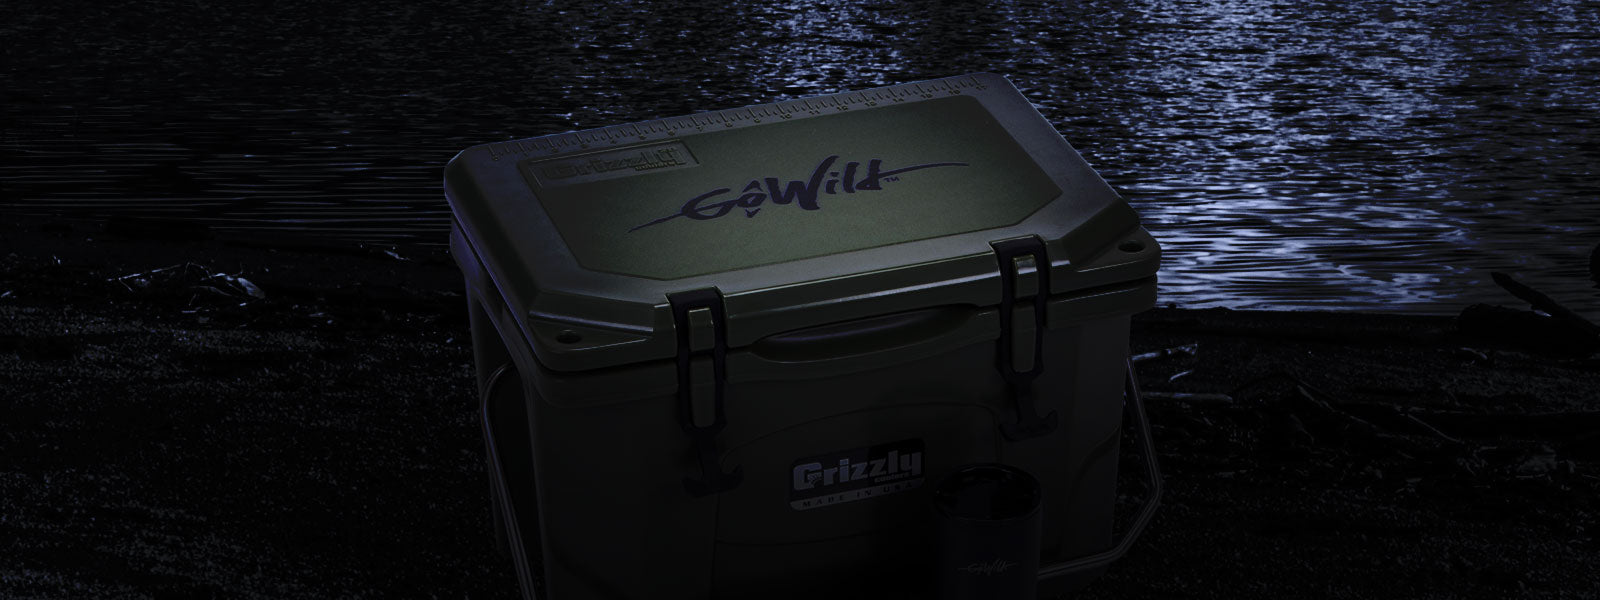 Giveaway: Custom Grizzly Cooler & GoWild Gear